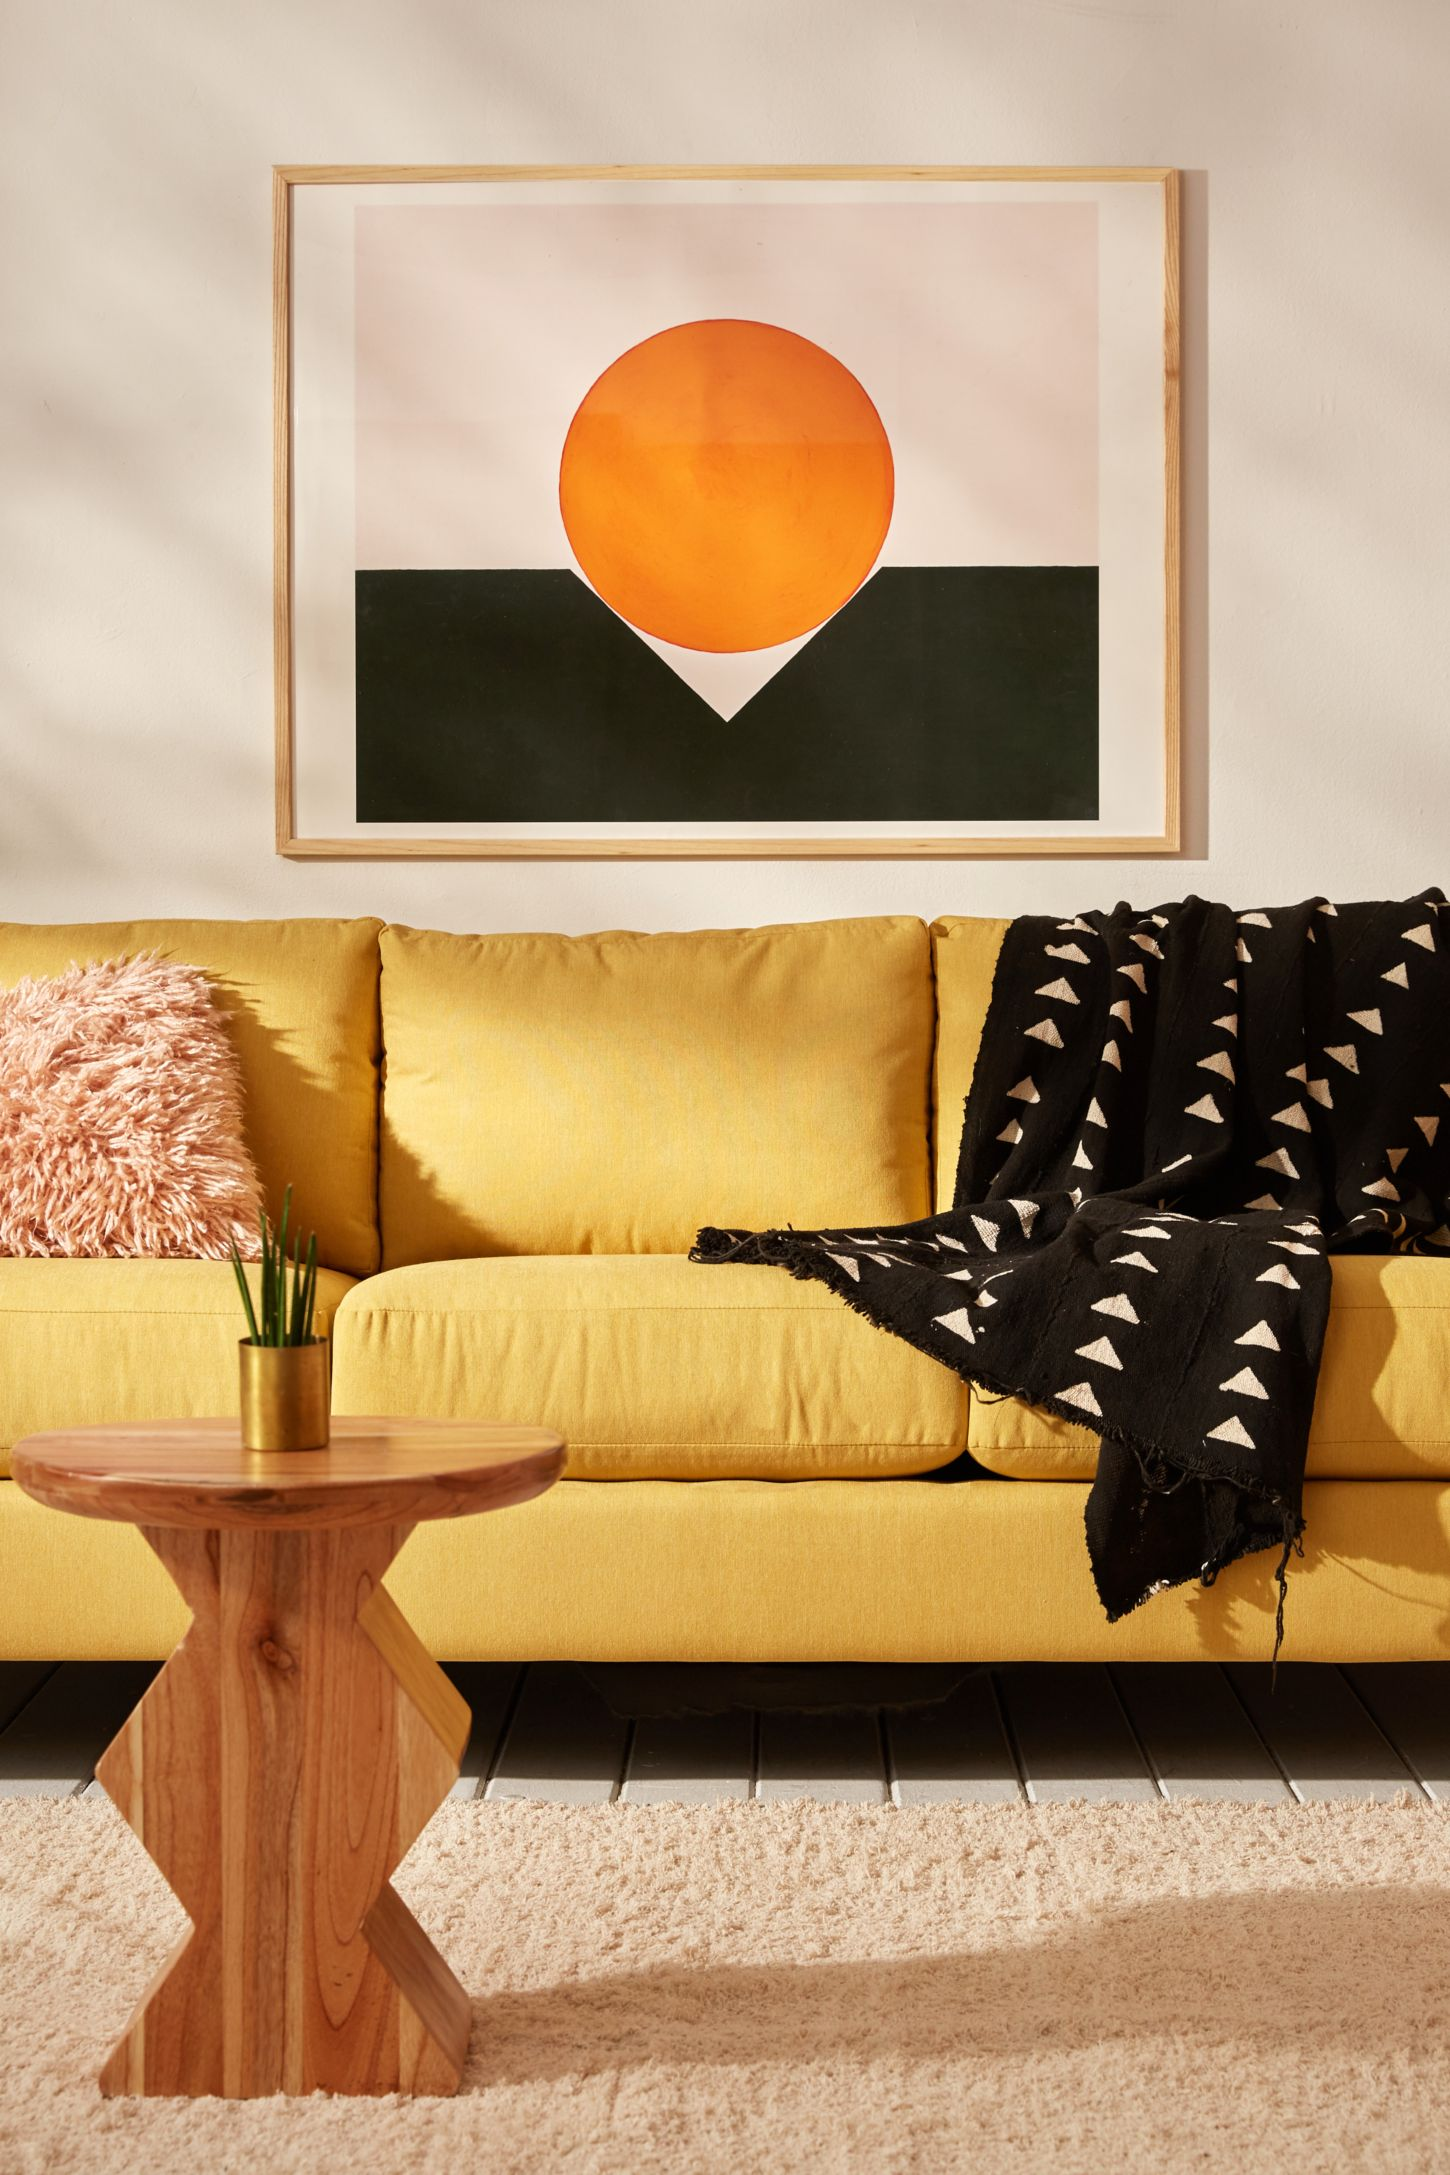 Minimalist - Wall Decals + Art Prints | Urban Outfitters